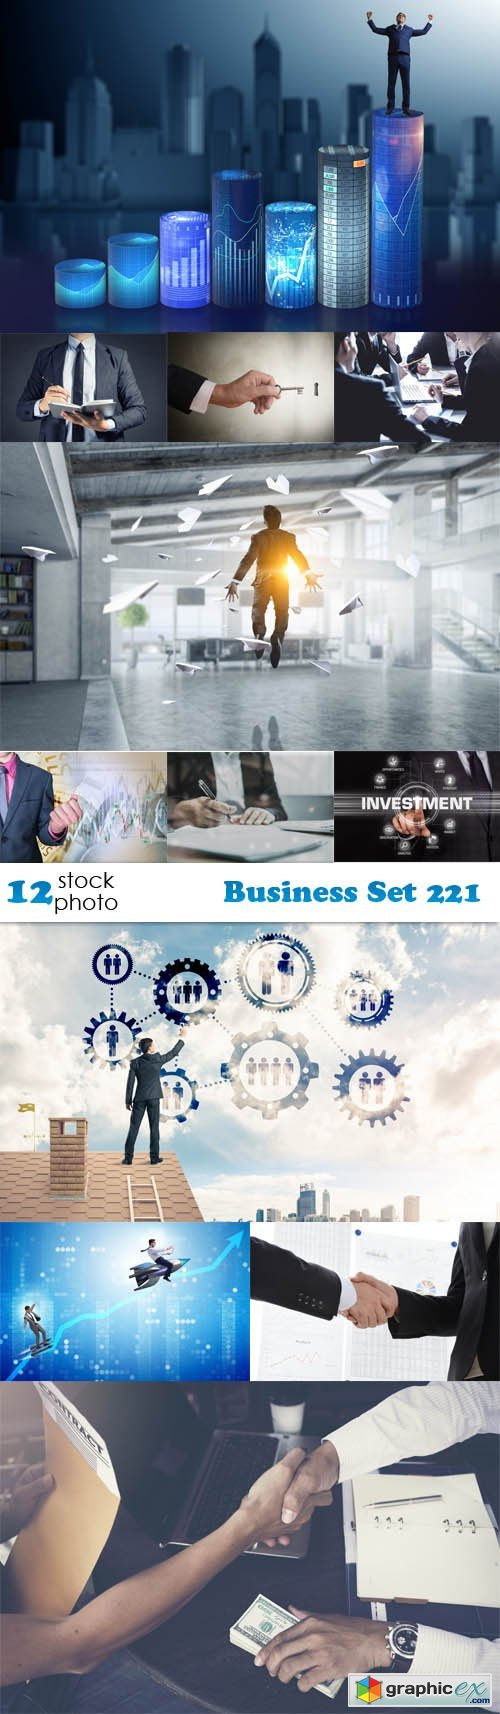 Business Set 221